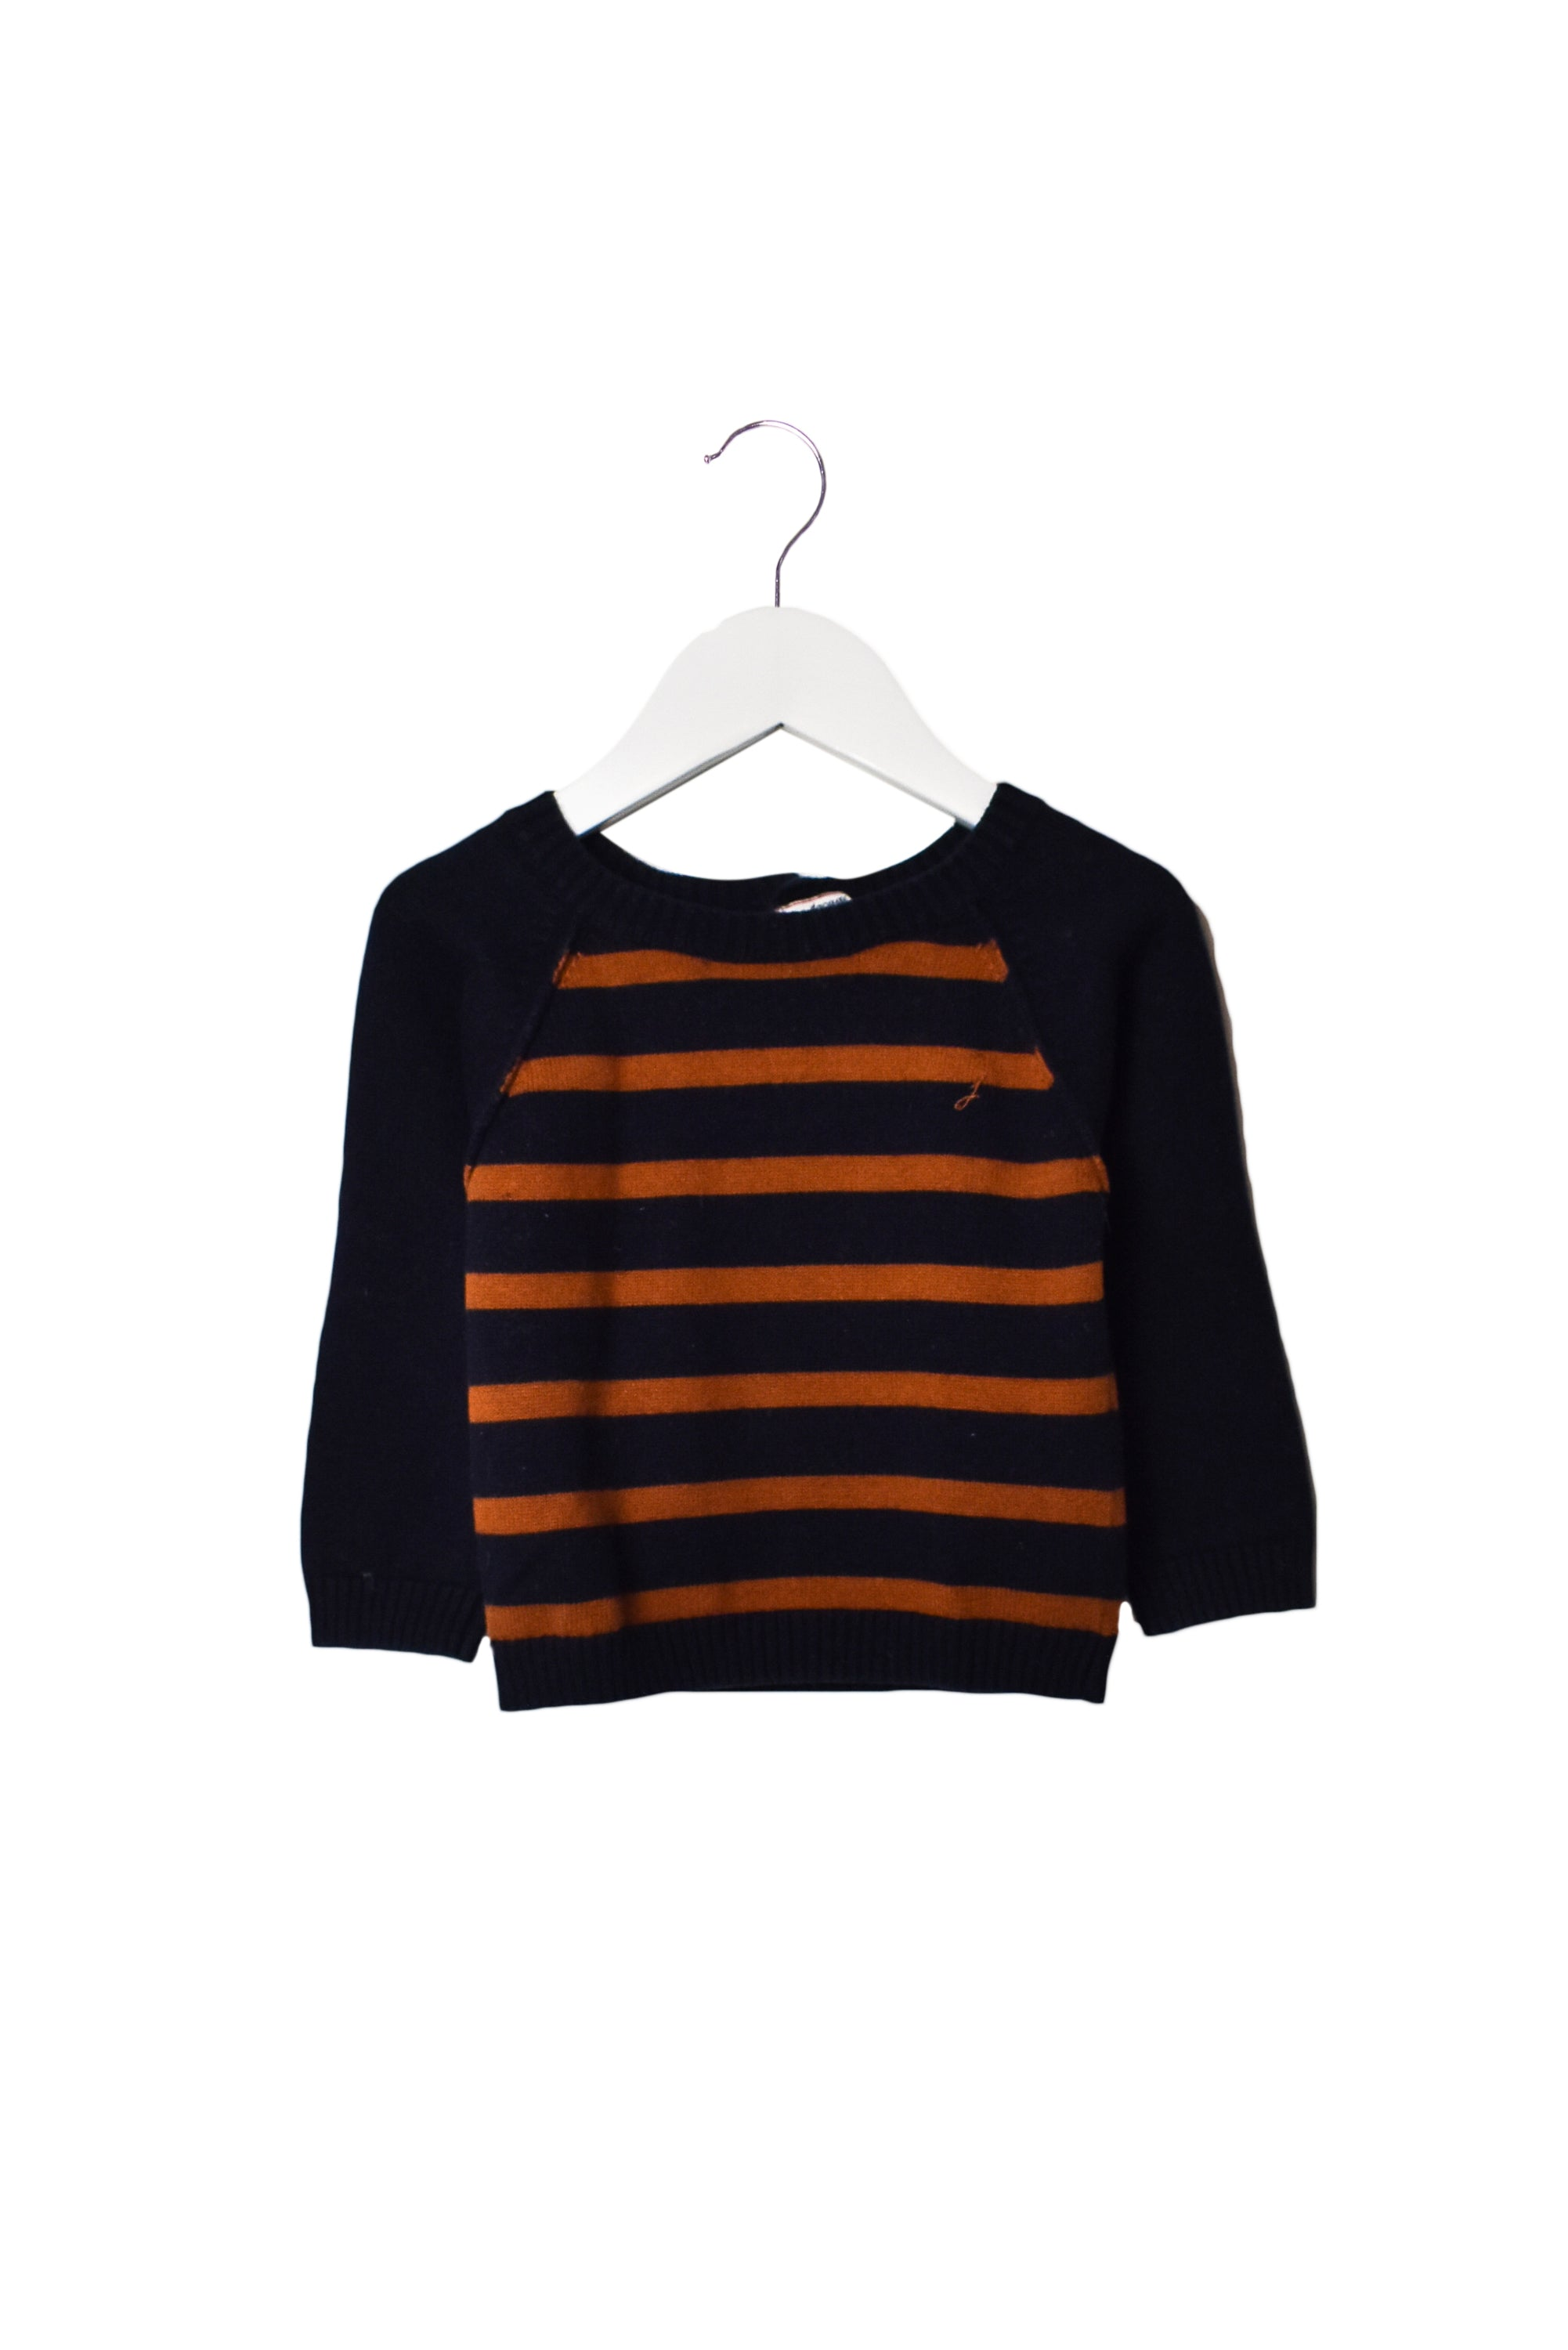 10007830 Jacadi Baby~ Sweater 18M at Retykle